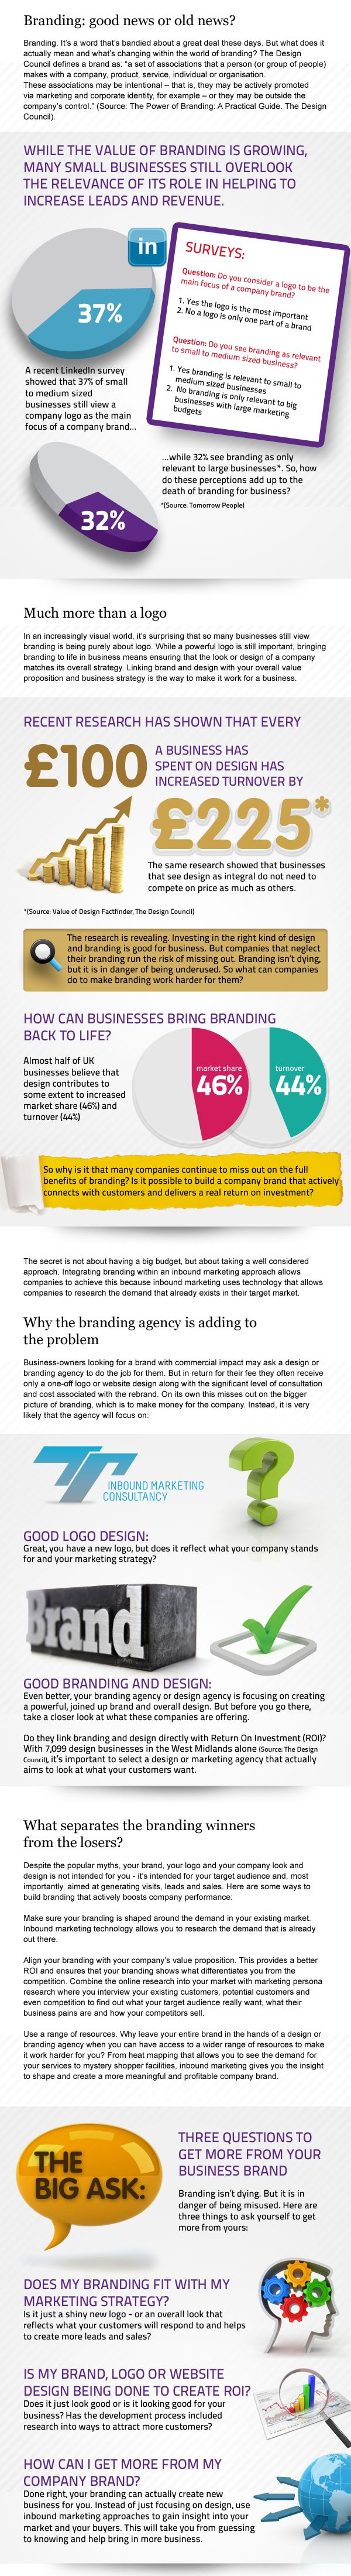 http://www.business2community.com/branding/the-death-of-branding-infographic-0152913